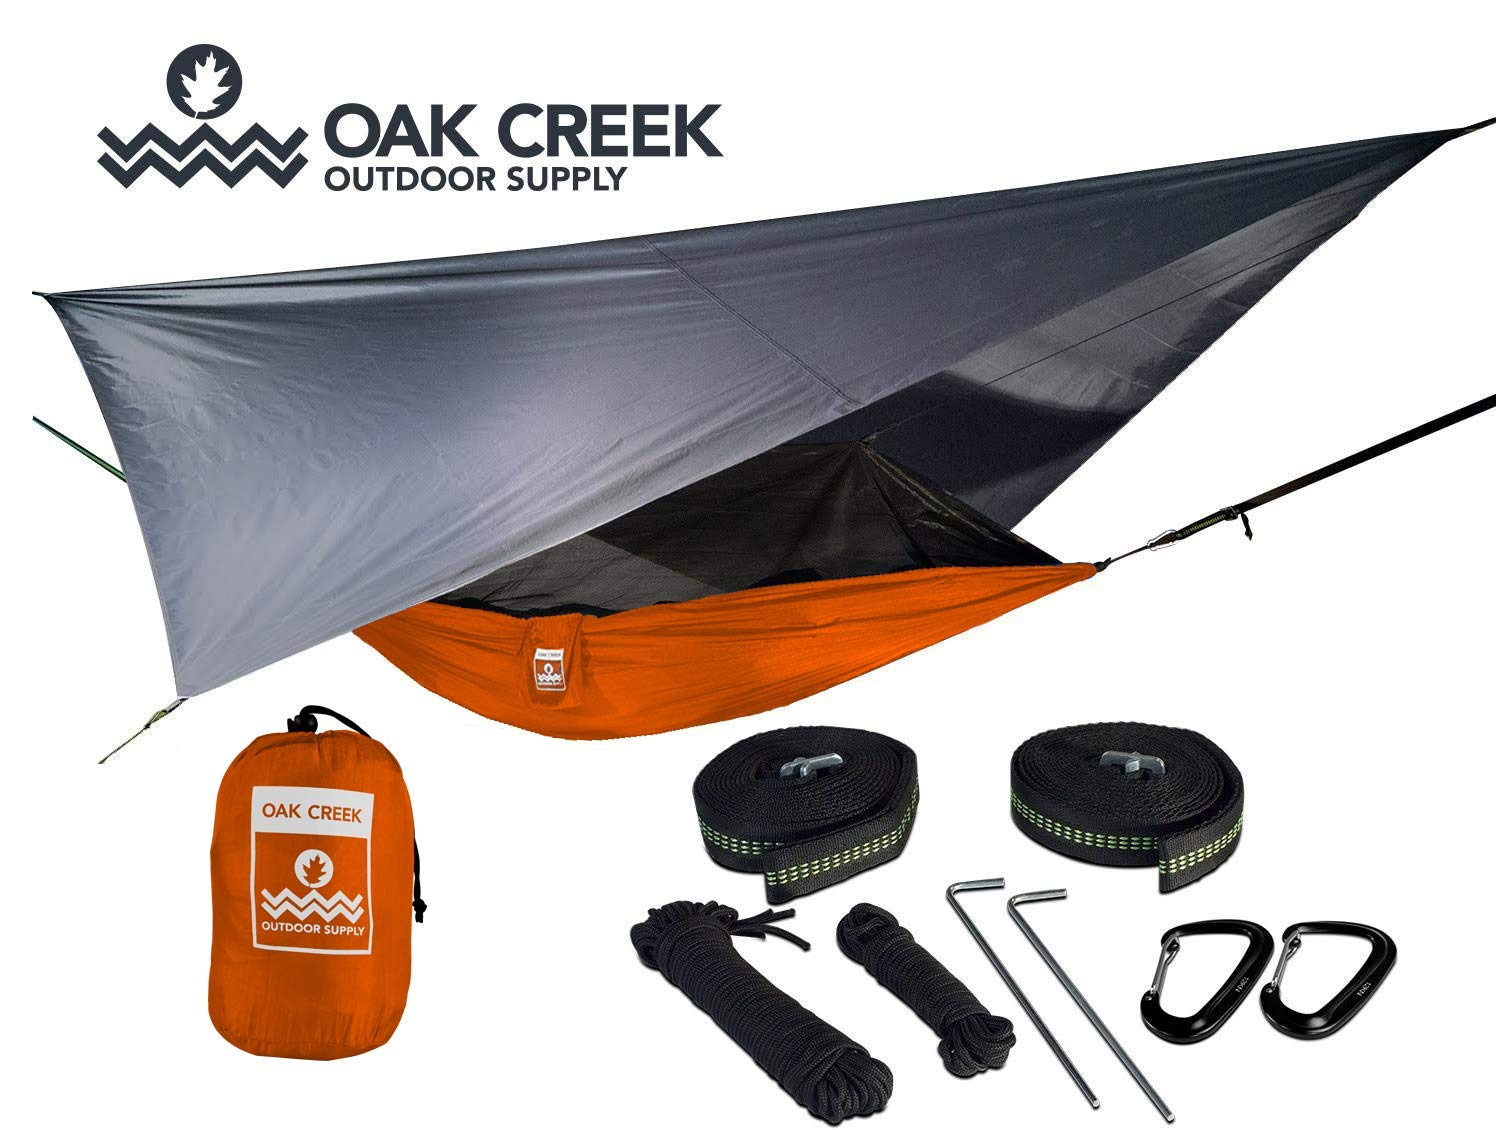 Lost Valley Camping Hammock (Orange and Gray)| Bundle Includes Mosquito Net, Rain Fly, Tree Straps, Compression Sack | Weighs 4 Pounds, Perfect for Hammock Camping | Lightweight Nylon Single Hammock